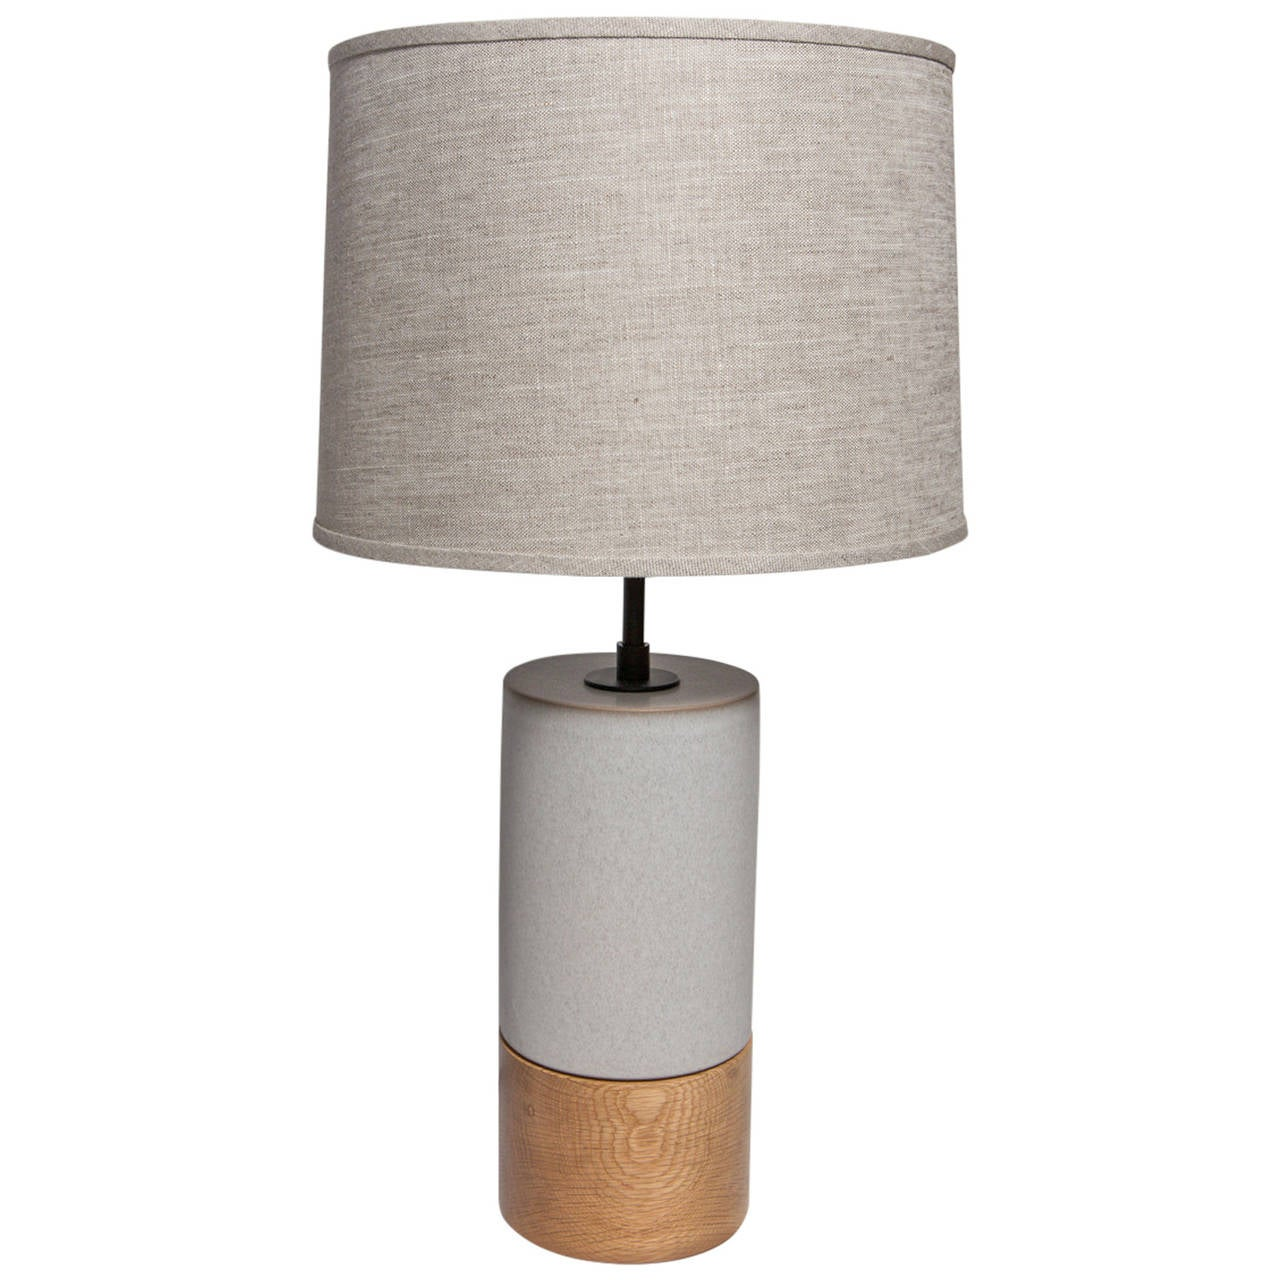 Short Baxter Ceramic And Oak Table Lamps By Stone And